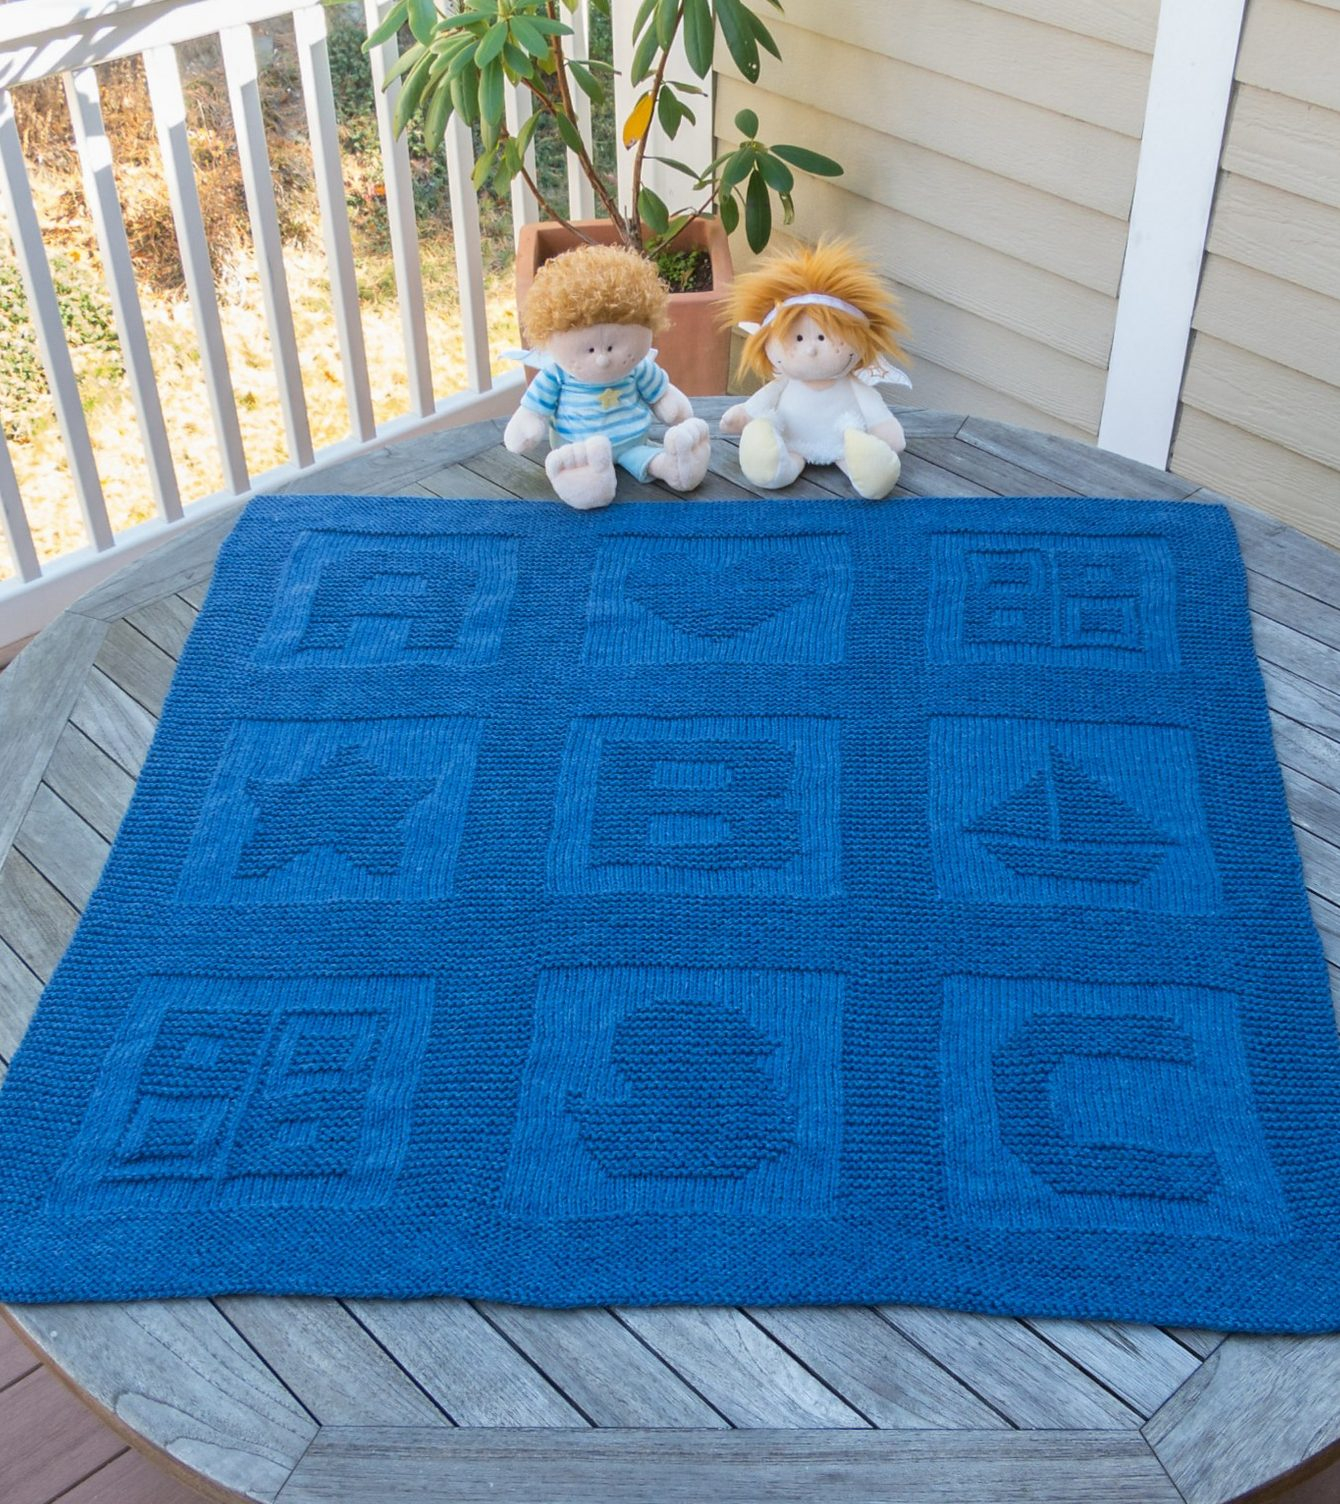 Free Easy Baby Blanket Knitting Patterns For Beginners Discover Simple Steps For Knitting Patterns For Ba Blankets